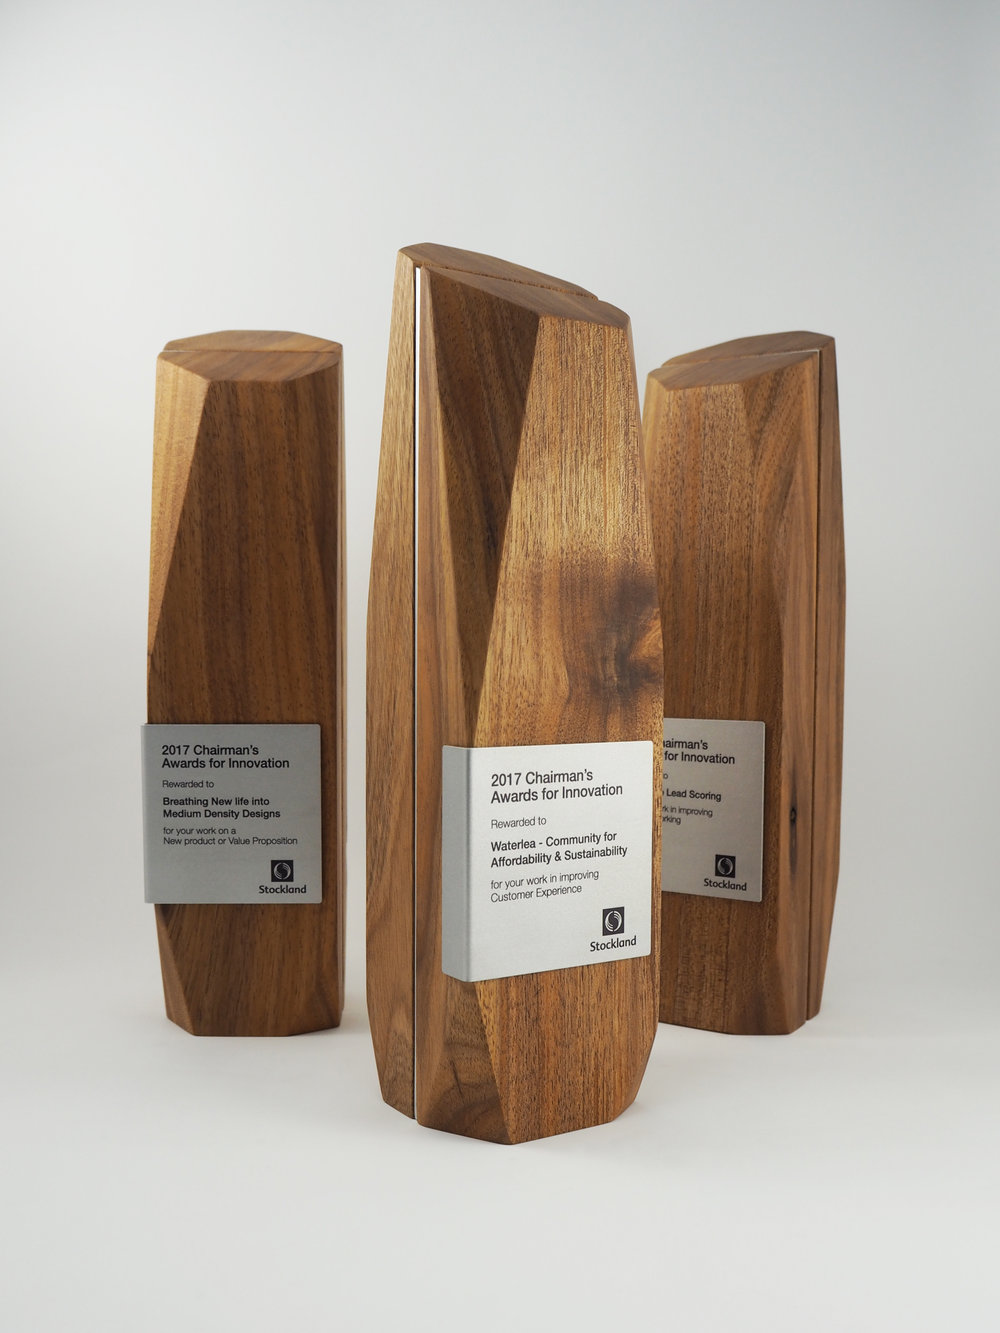 Stockland-Chairmans-timber-eco-trophy-awards-03.jpg